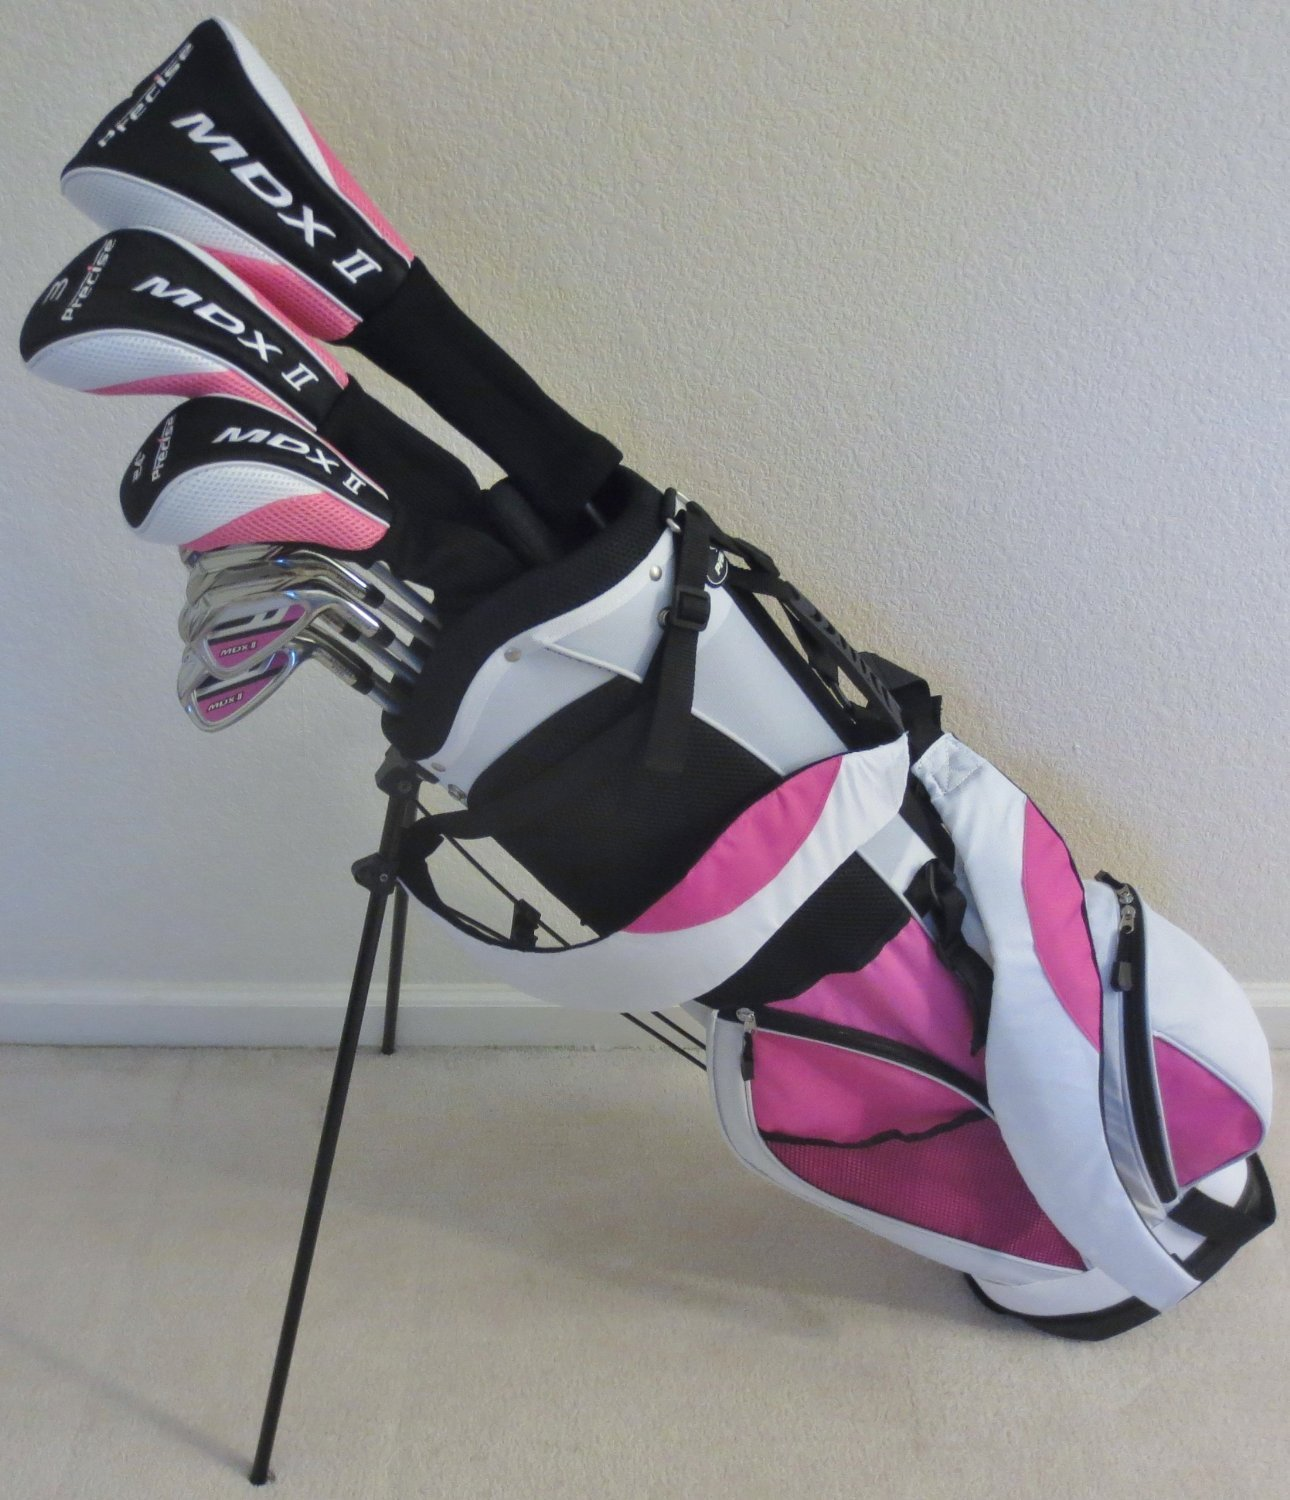 Ladies Complete Golf Club Set Driver, Fairway Wood, Hybrid, Irons, Putter, Stand Bag